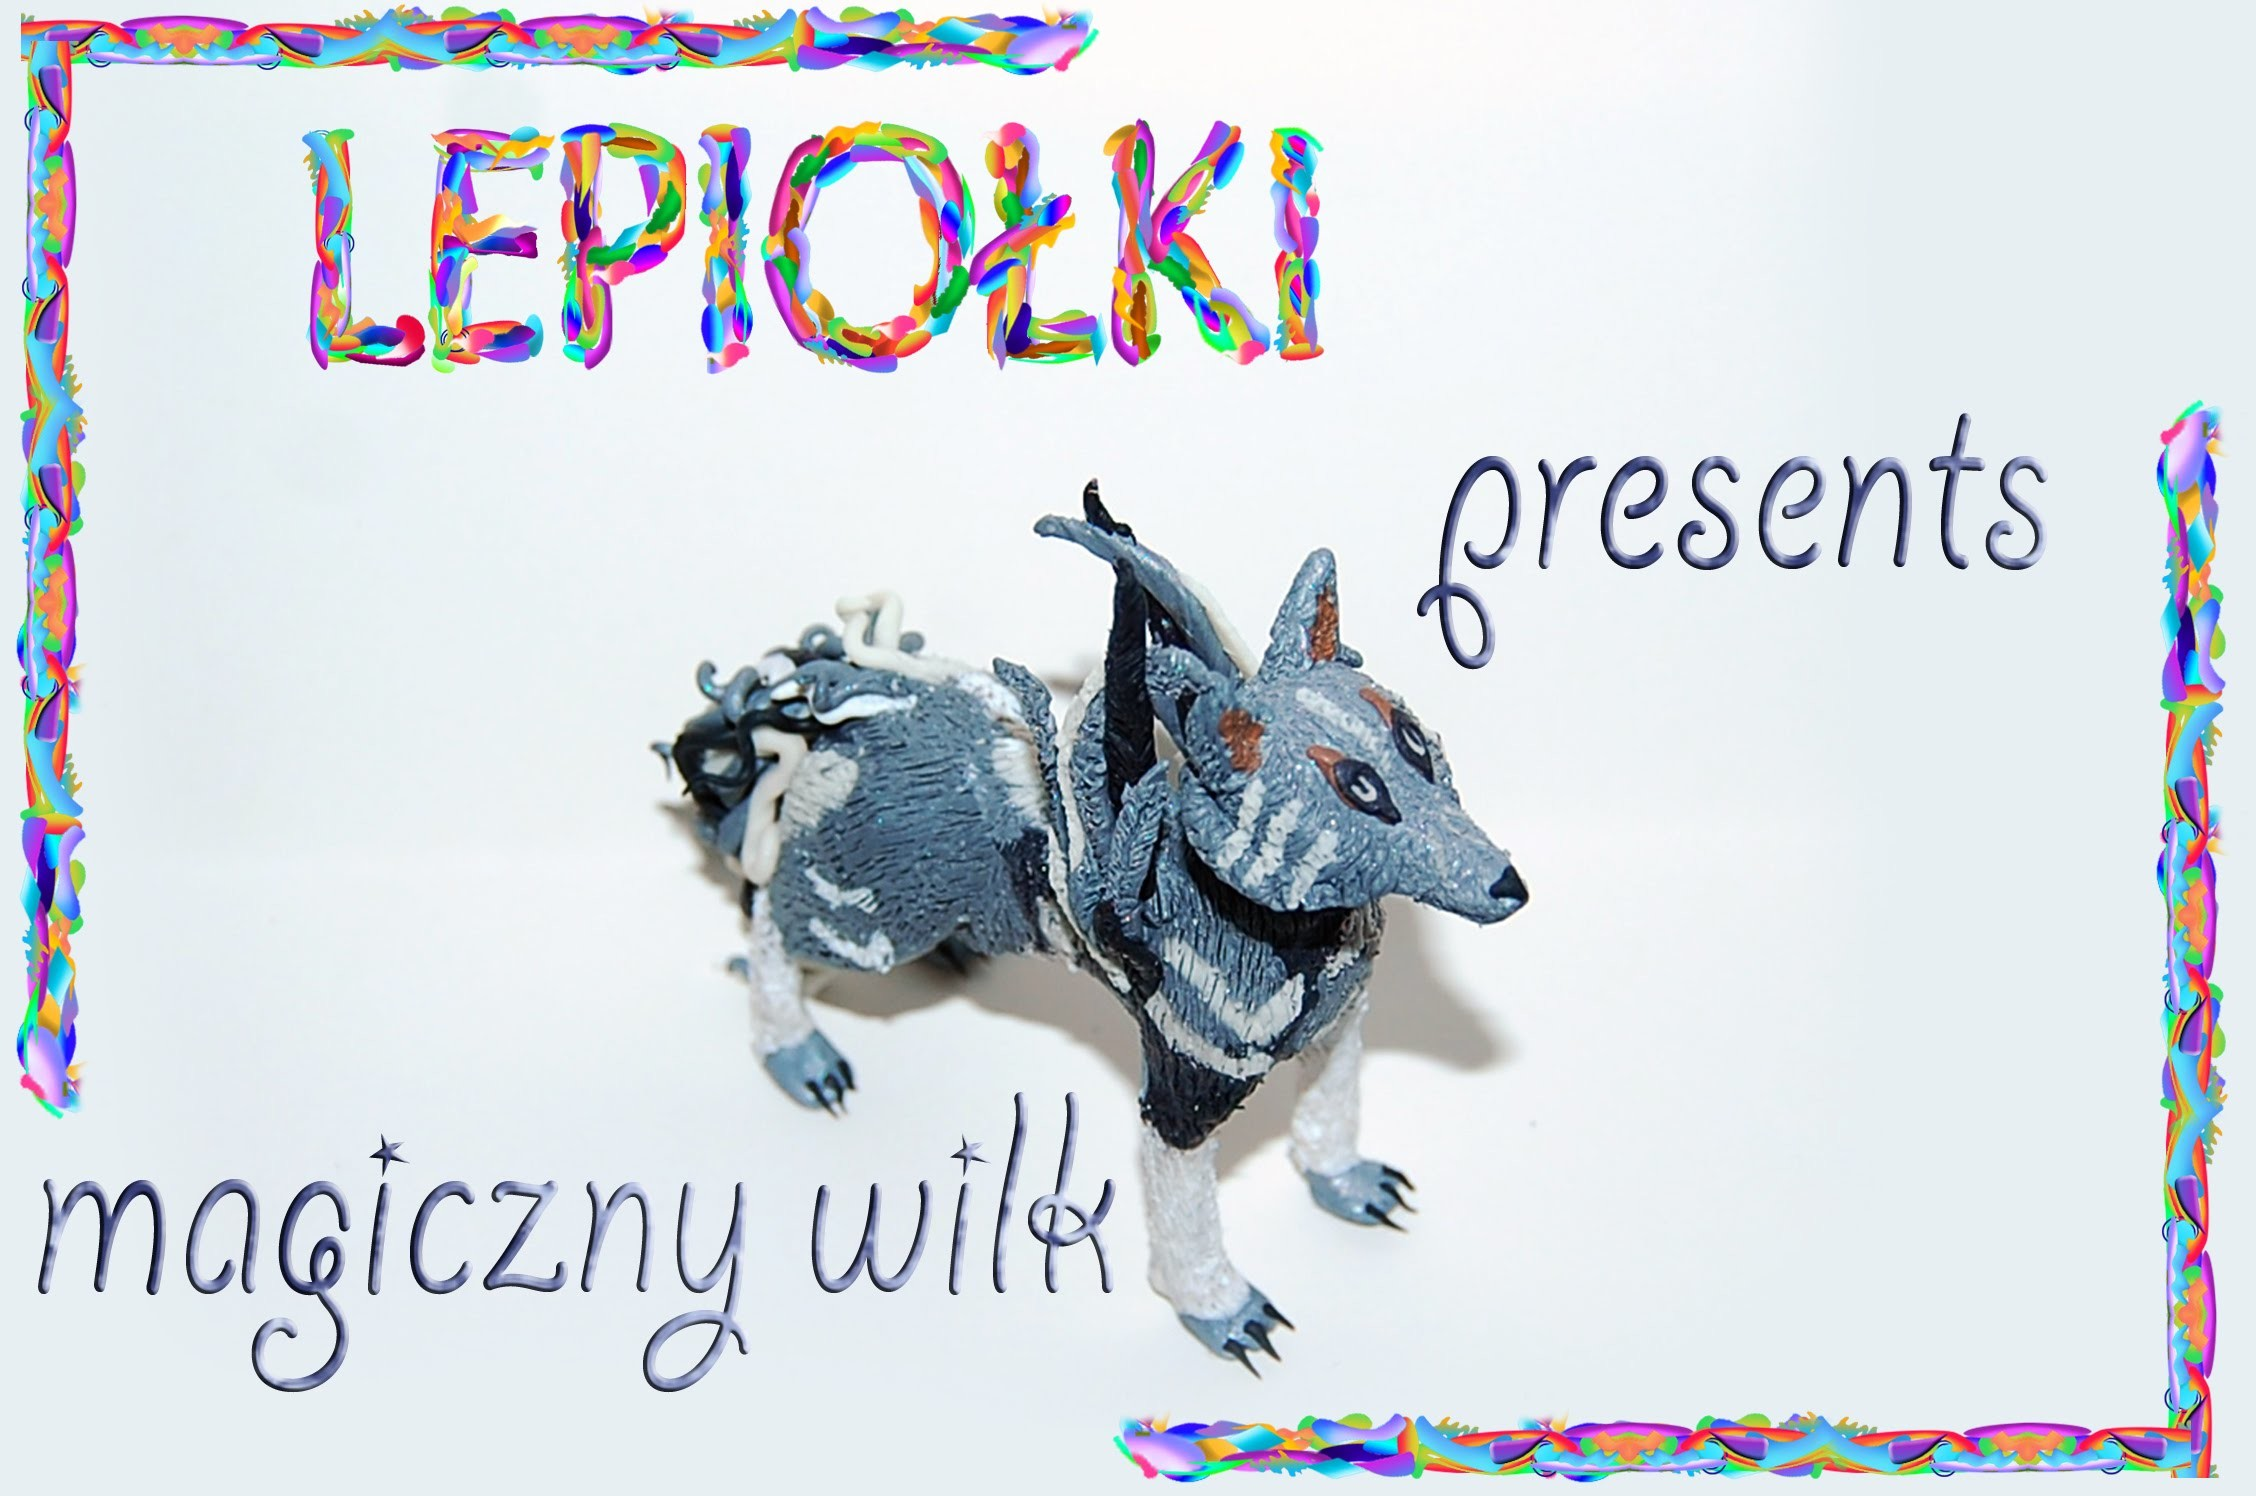 TUTORIAL: Magiczny wilk magical wolf PART 2 polymer clay made hand lepiołki z modeliny